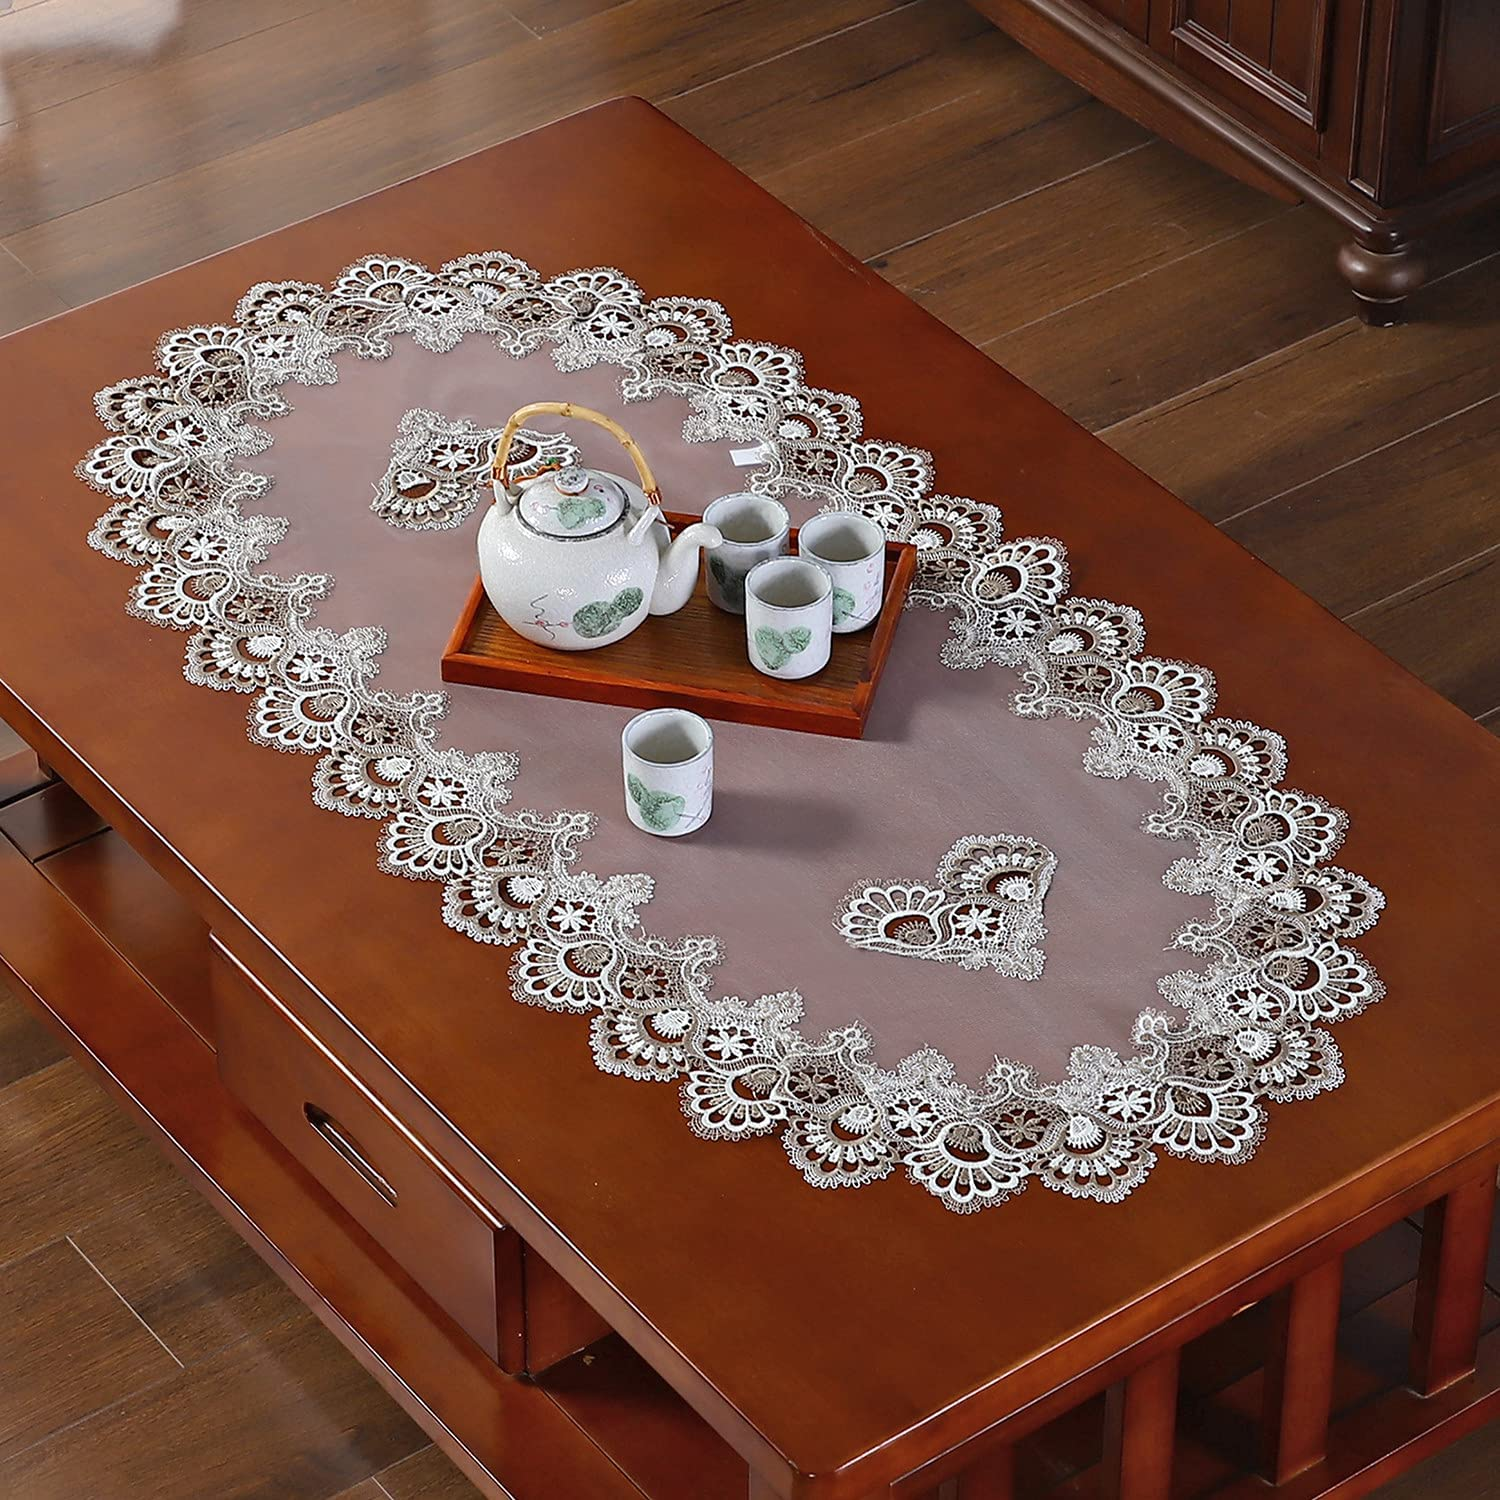 QsyyHome Oval Small Lace Delicate Embroidery Translucent Hollow Carved Table Runner Dresser Scarf Table Top Decoration Linen Gray 16 x 35 inches